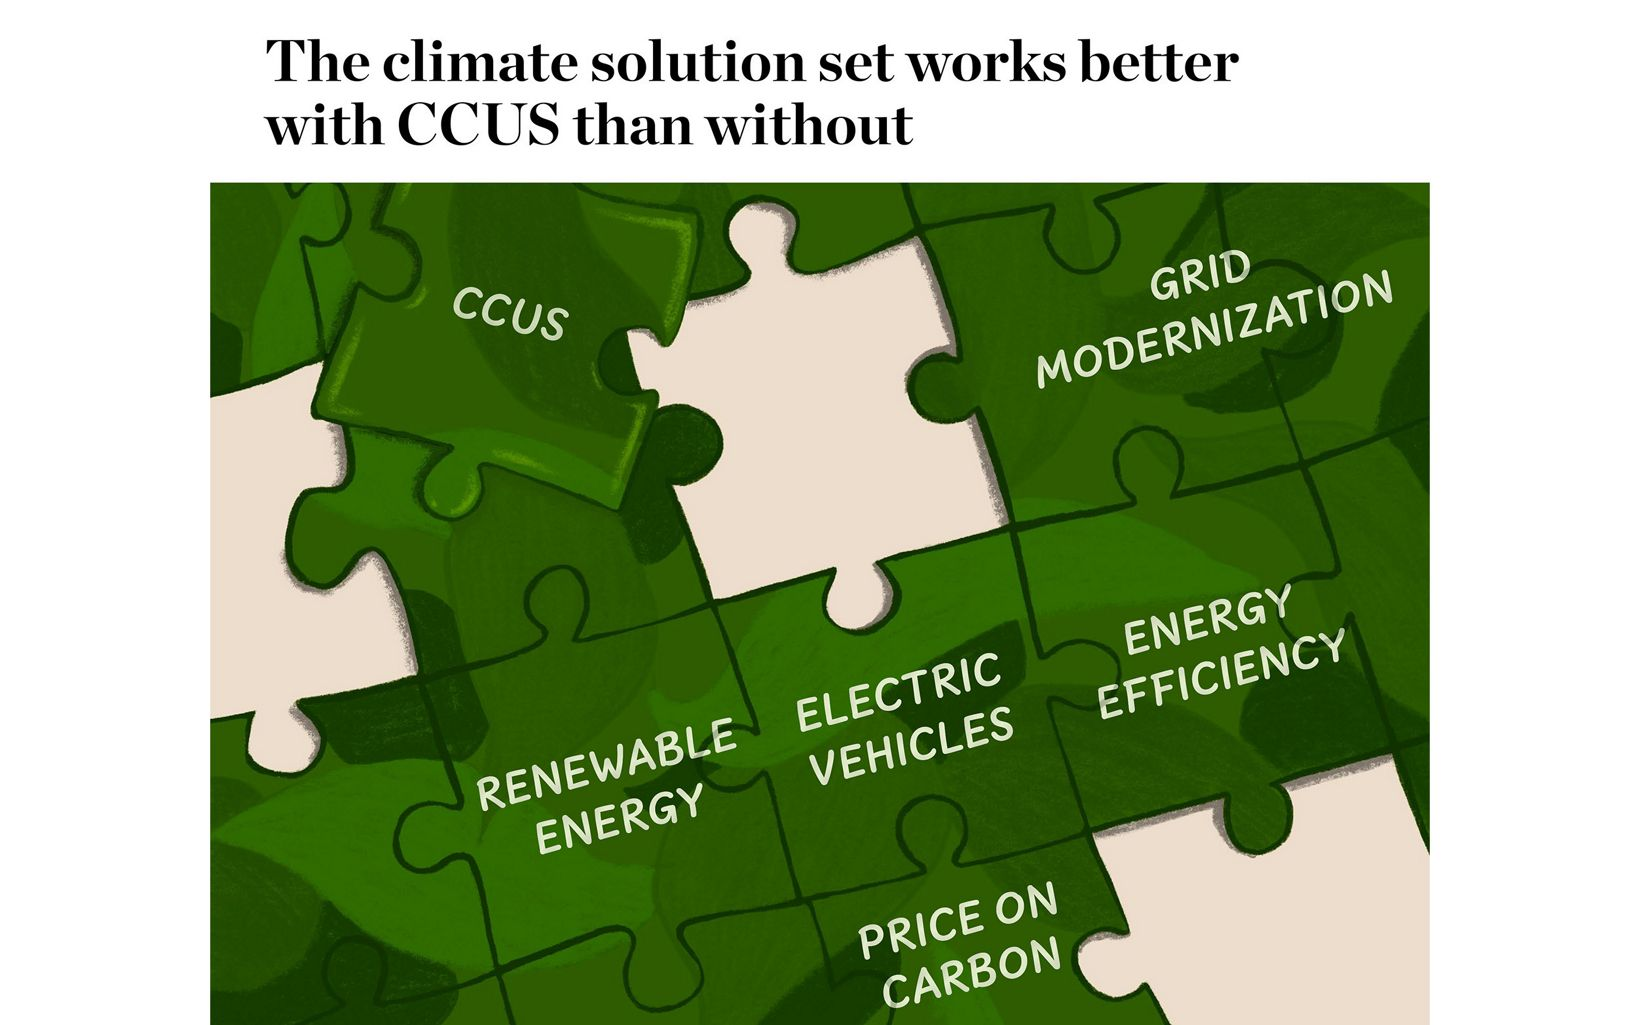 Illustration of a jigsaw puzzle showing added piece of carbon capture utilization and storage, with grid modernization, energy efficiency, electric vehicles, other options.